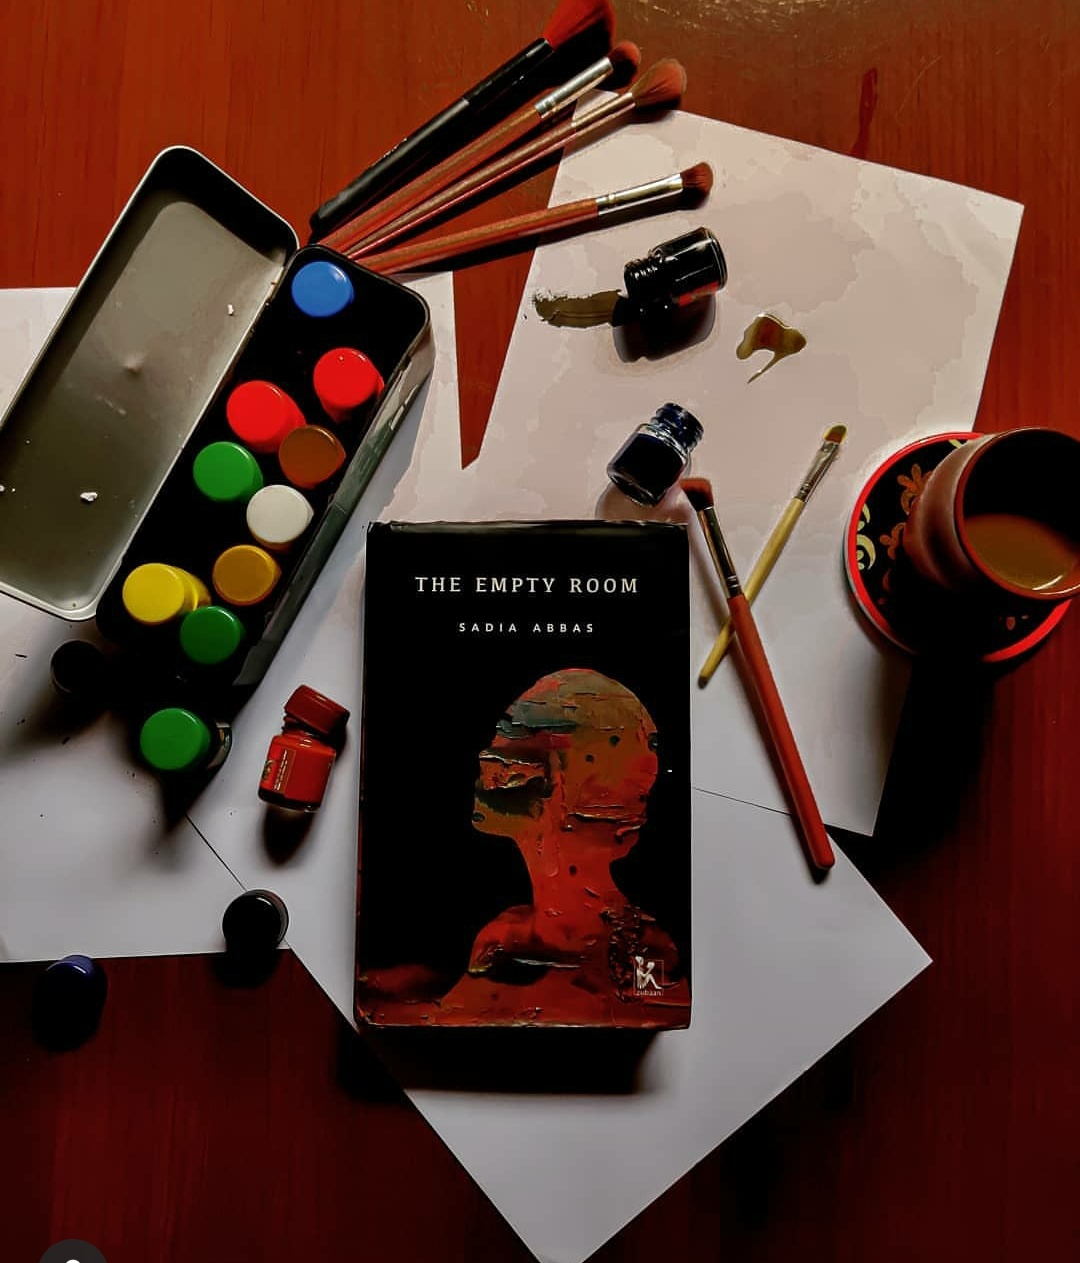 The Empty Room by Sadia Abbas: A story of love, art & loss in the midst of political turmoil.